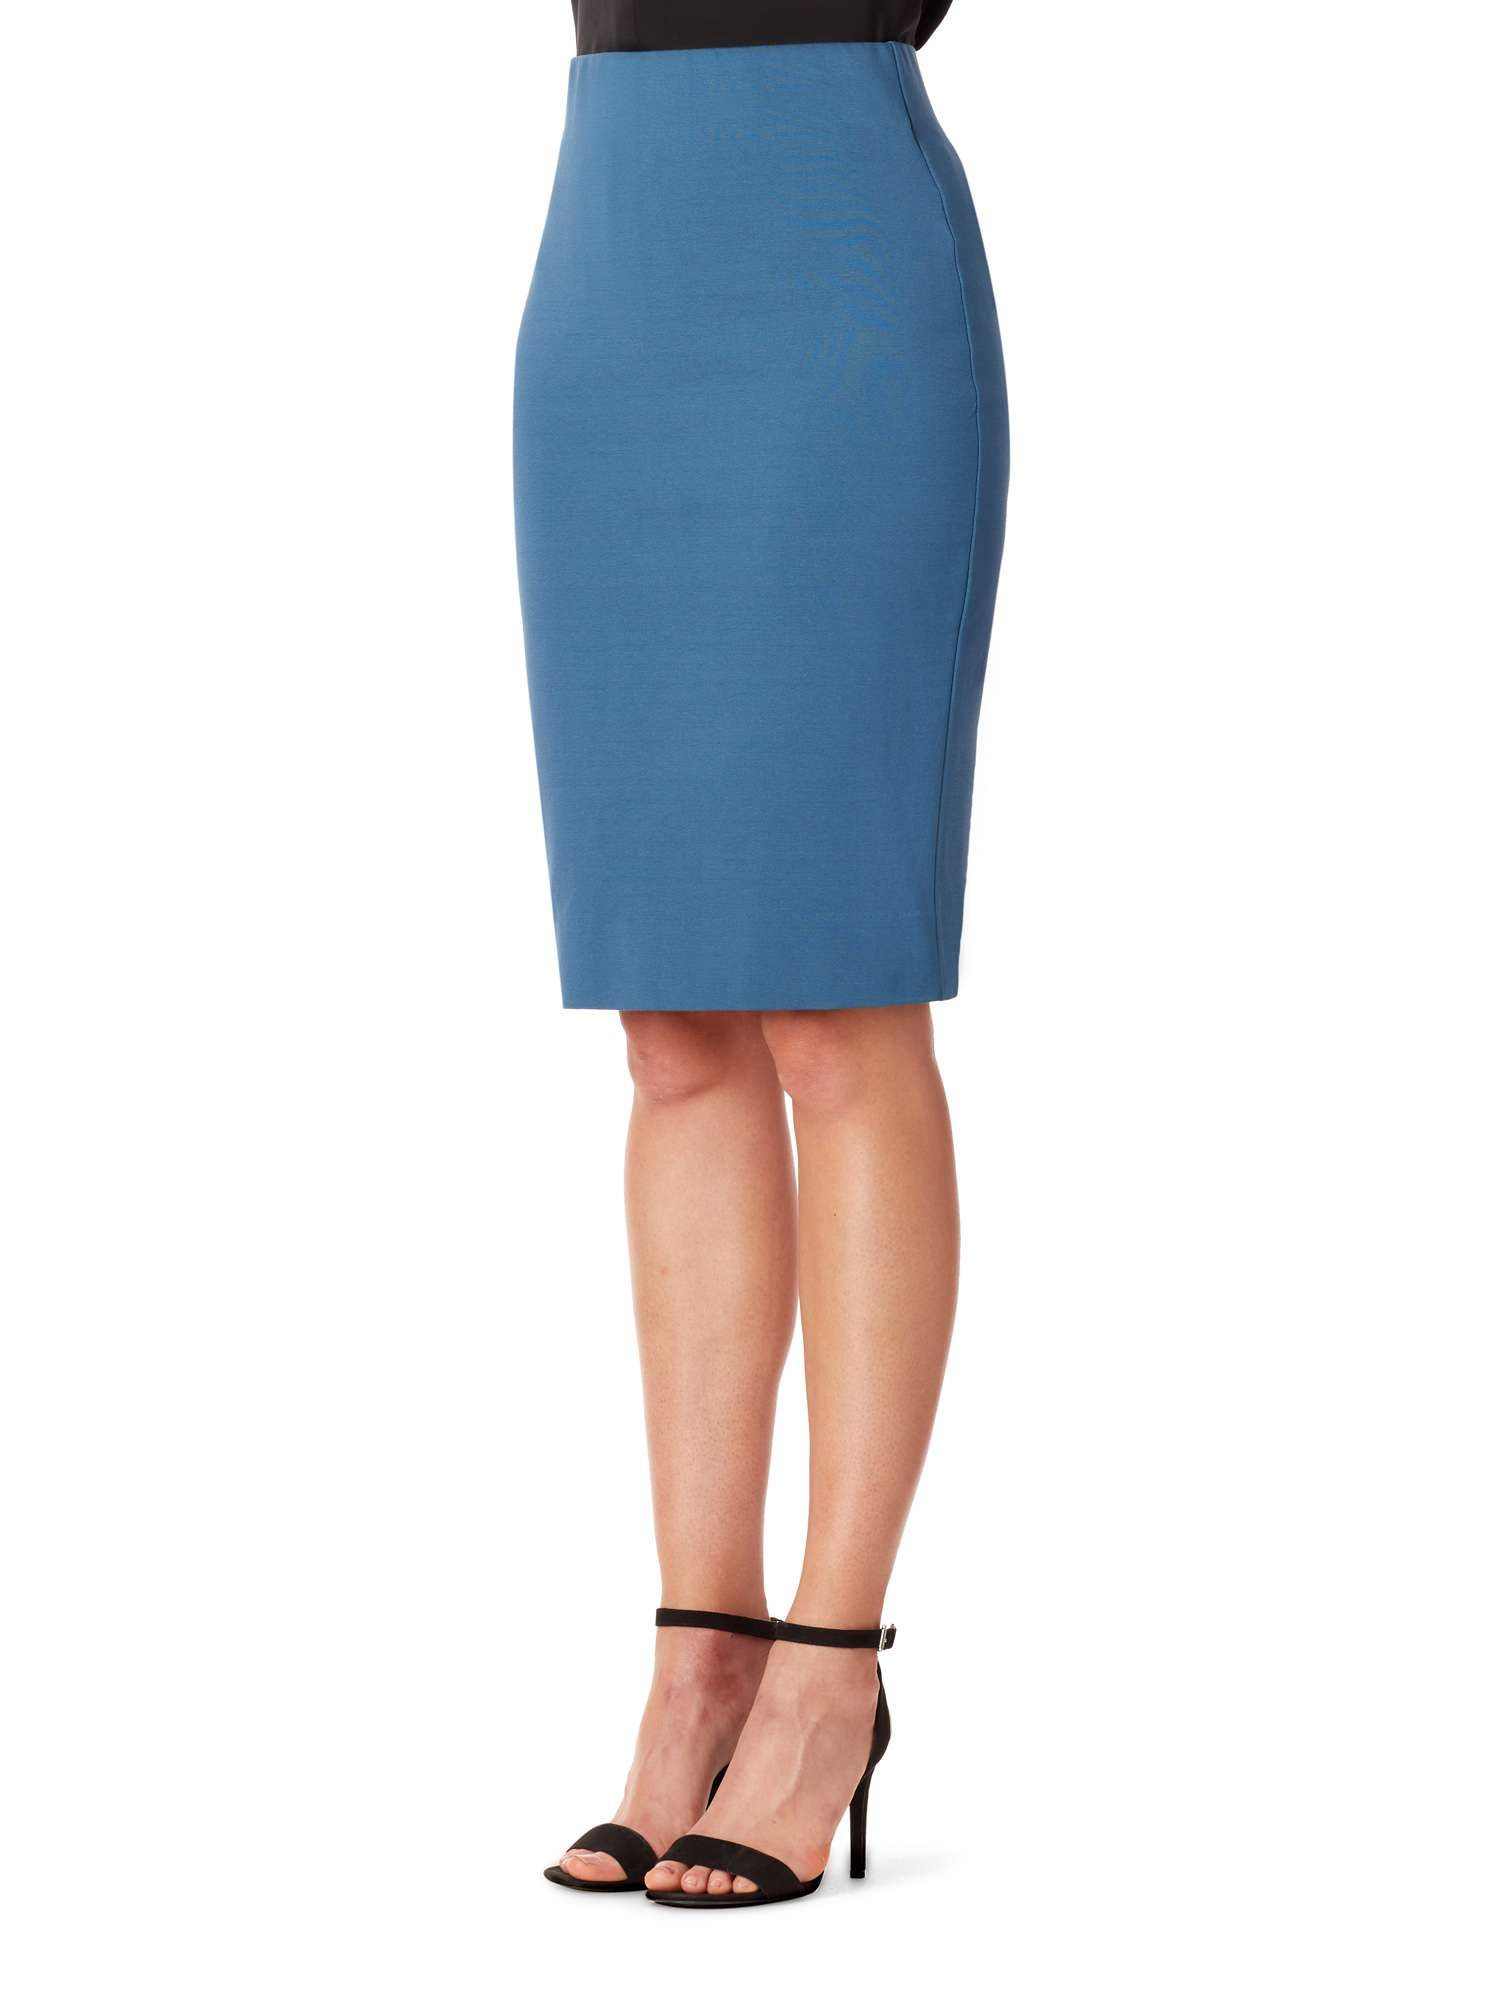 0d837a3185 Winser London Miracle Pencil Skirt - House of Fraser | Collette in ...